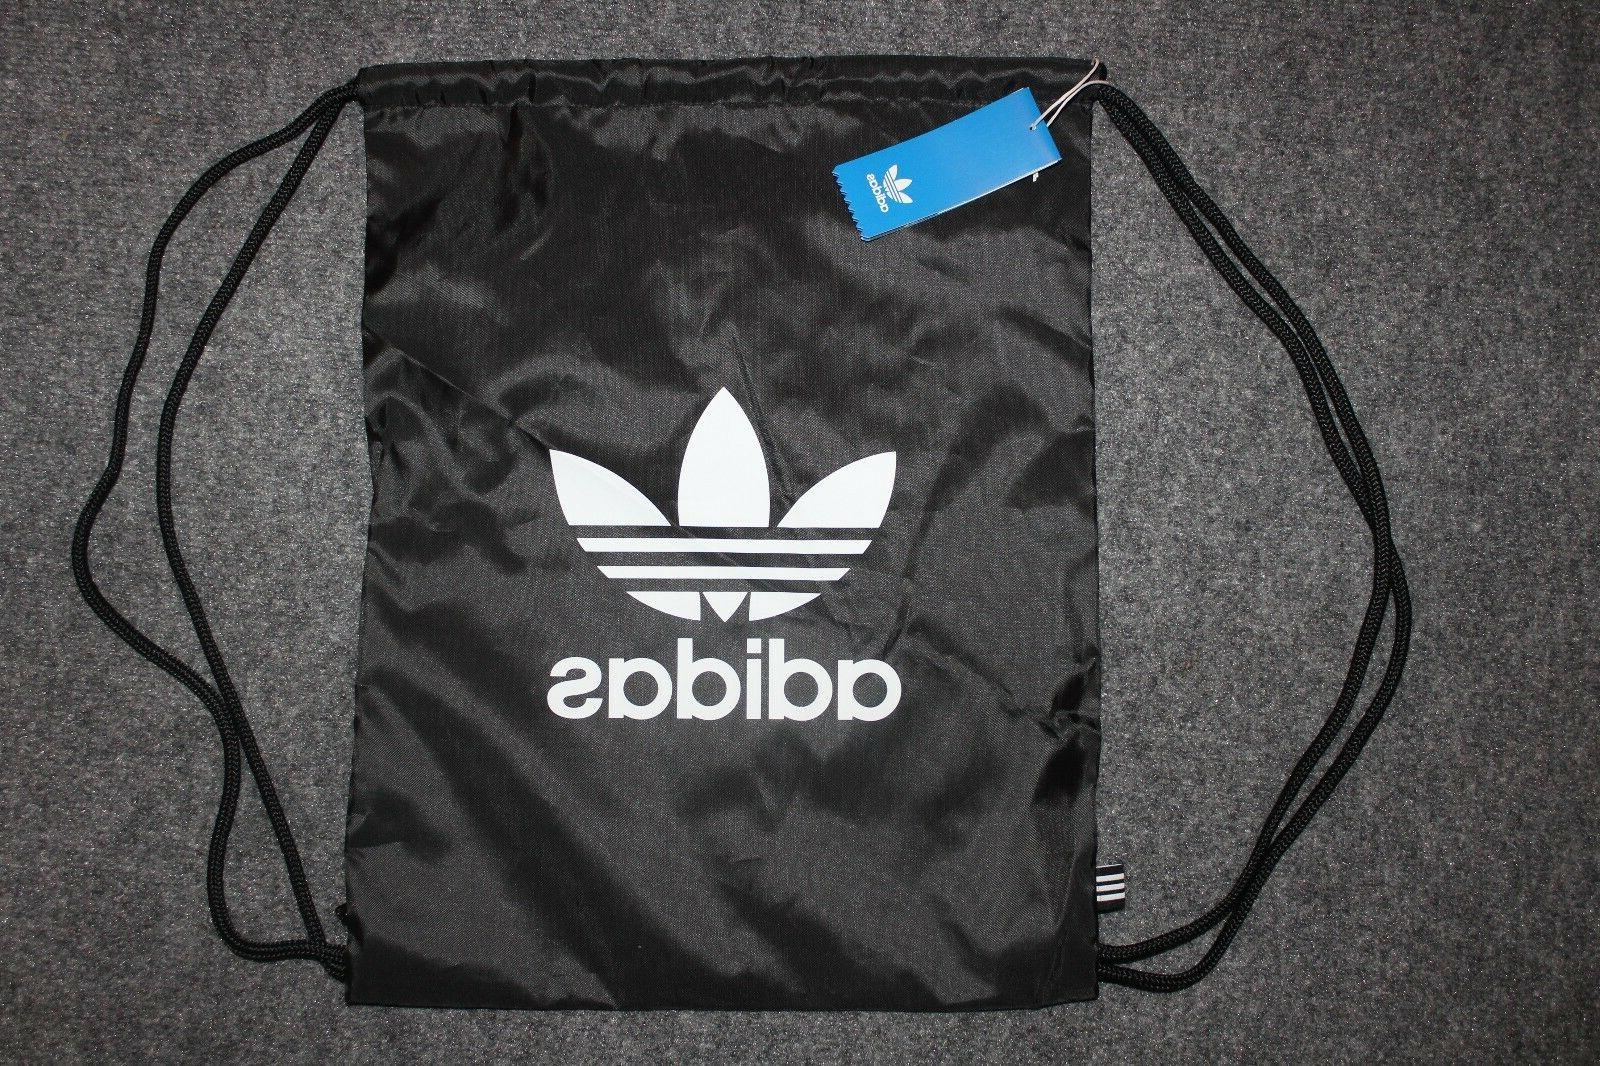 NEW ADIDAS ORIGINALS TREFOIL GYMSACK DRAWSTRING BACKPACK BAG #BK6726